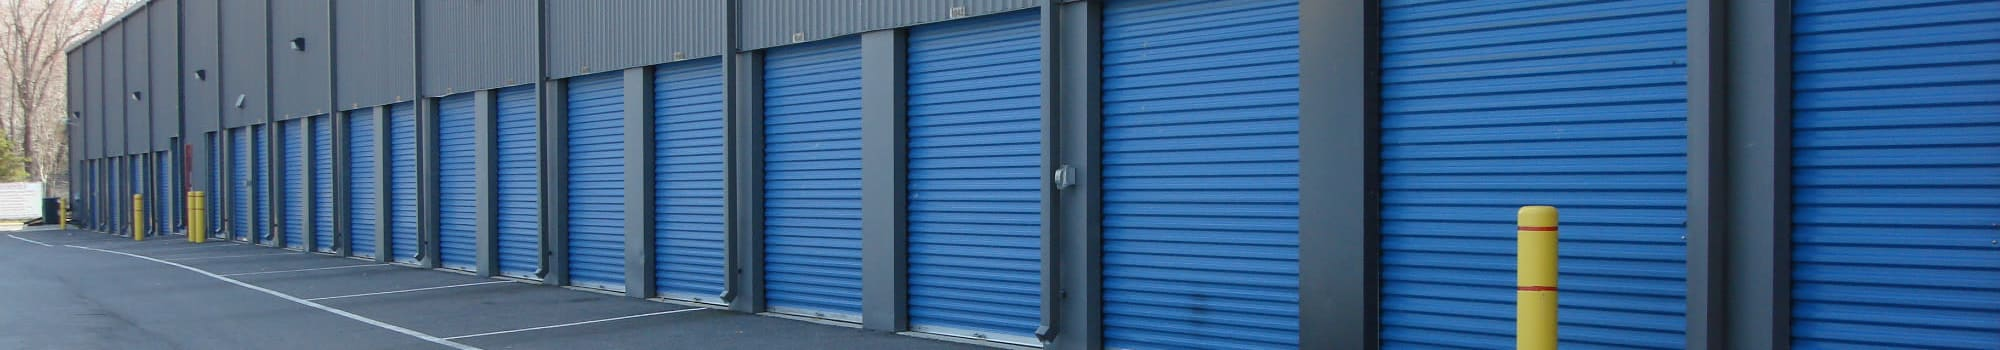 Self storage units in La Plata